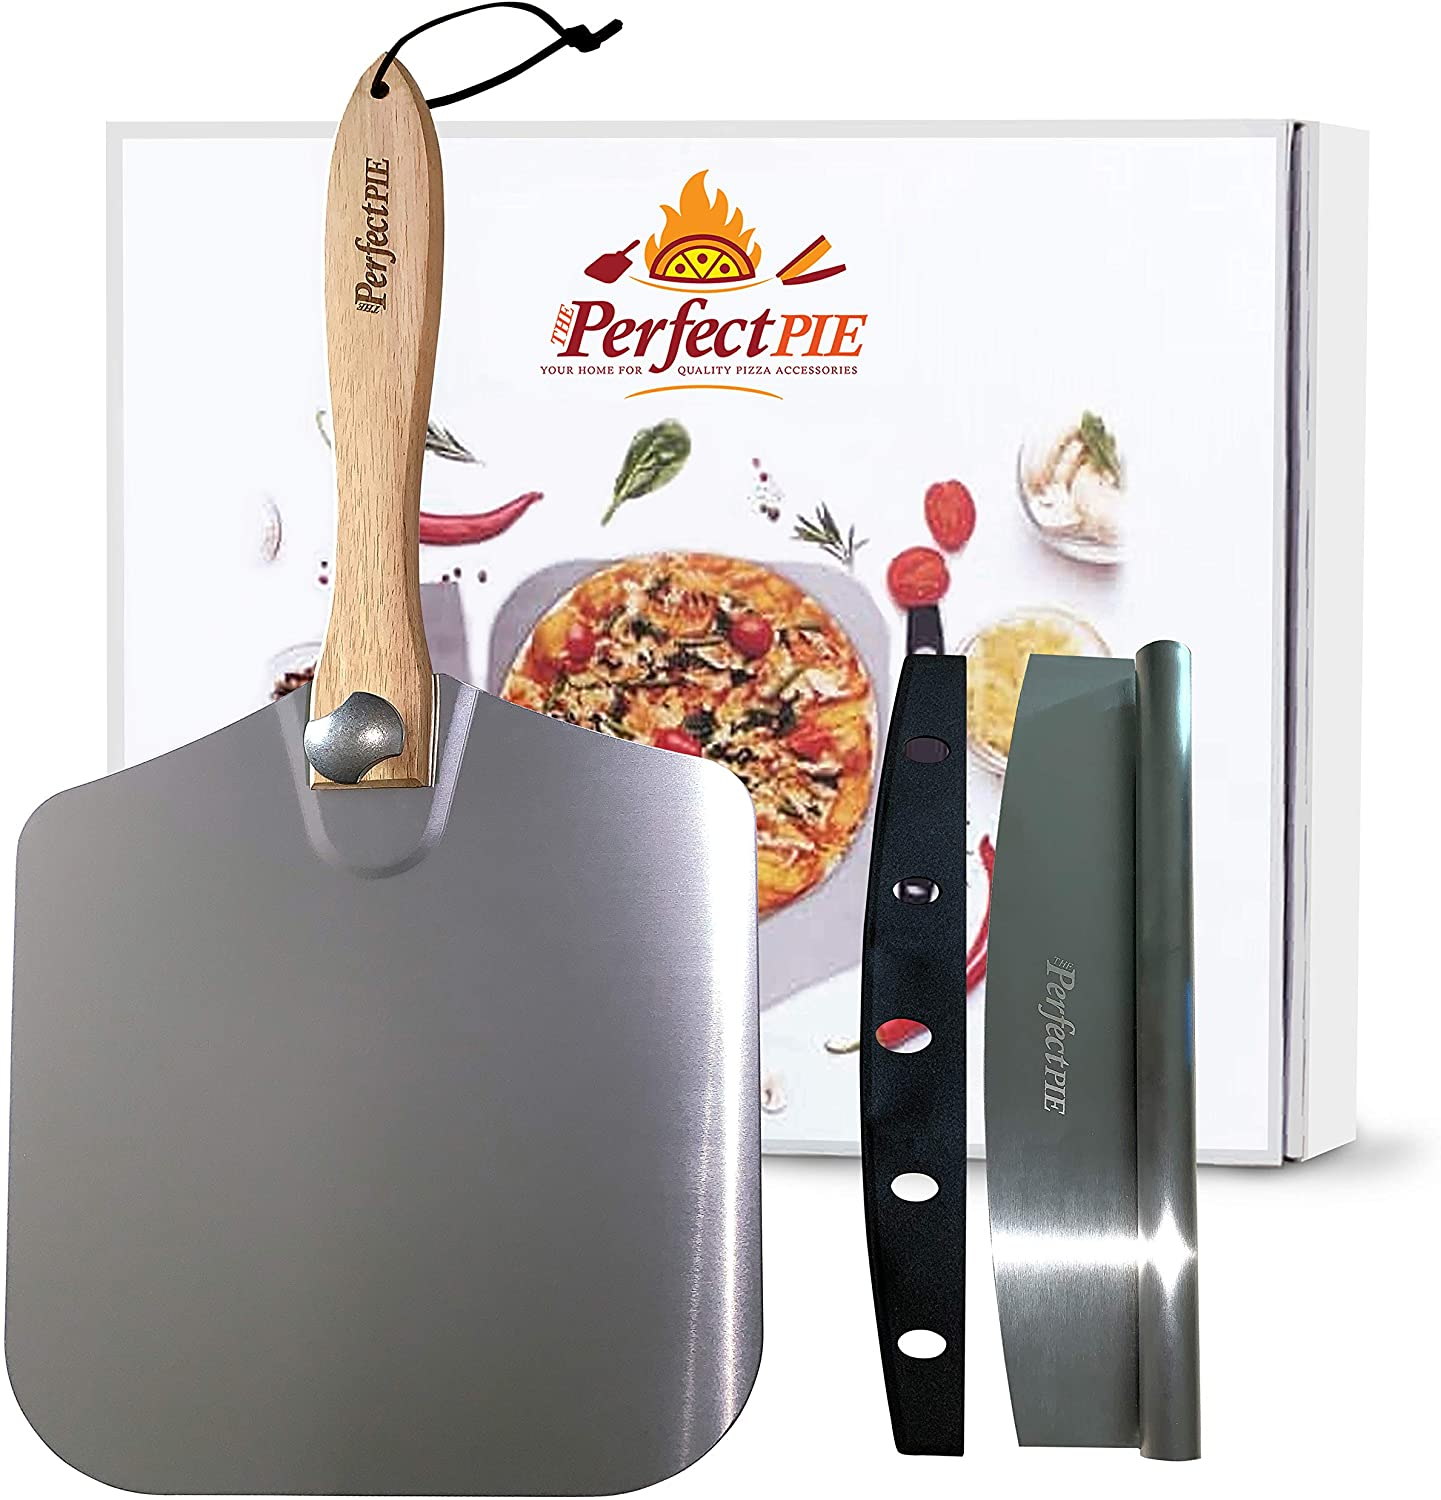 """The Perfect Pie Pizza Peel Aluminum Metal Pizza Paddle 12"""" x 14"""" with Foldable Wooden Handle and 14"""" Rocker Cutter with Cover - Easy Storage Pizza Spatula for Baking and Slicing Homemade Pizza Bread"""